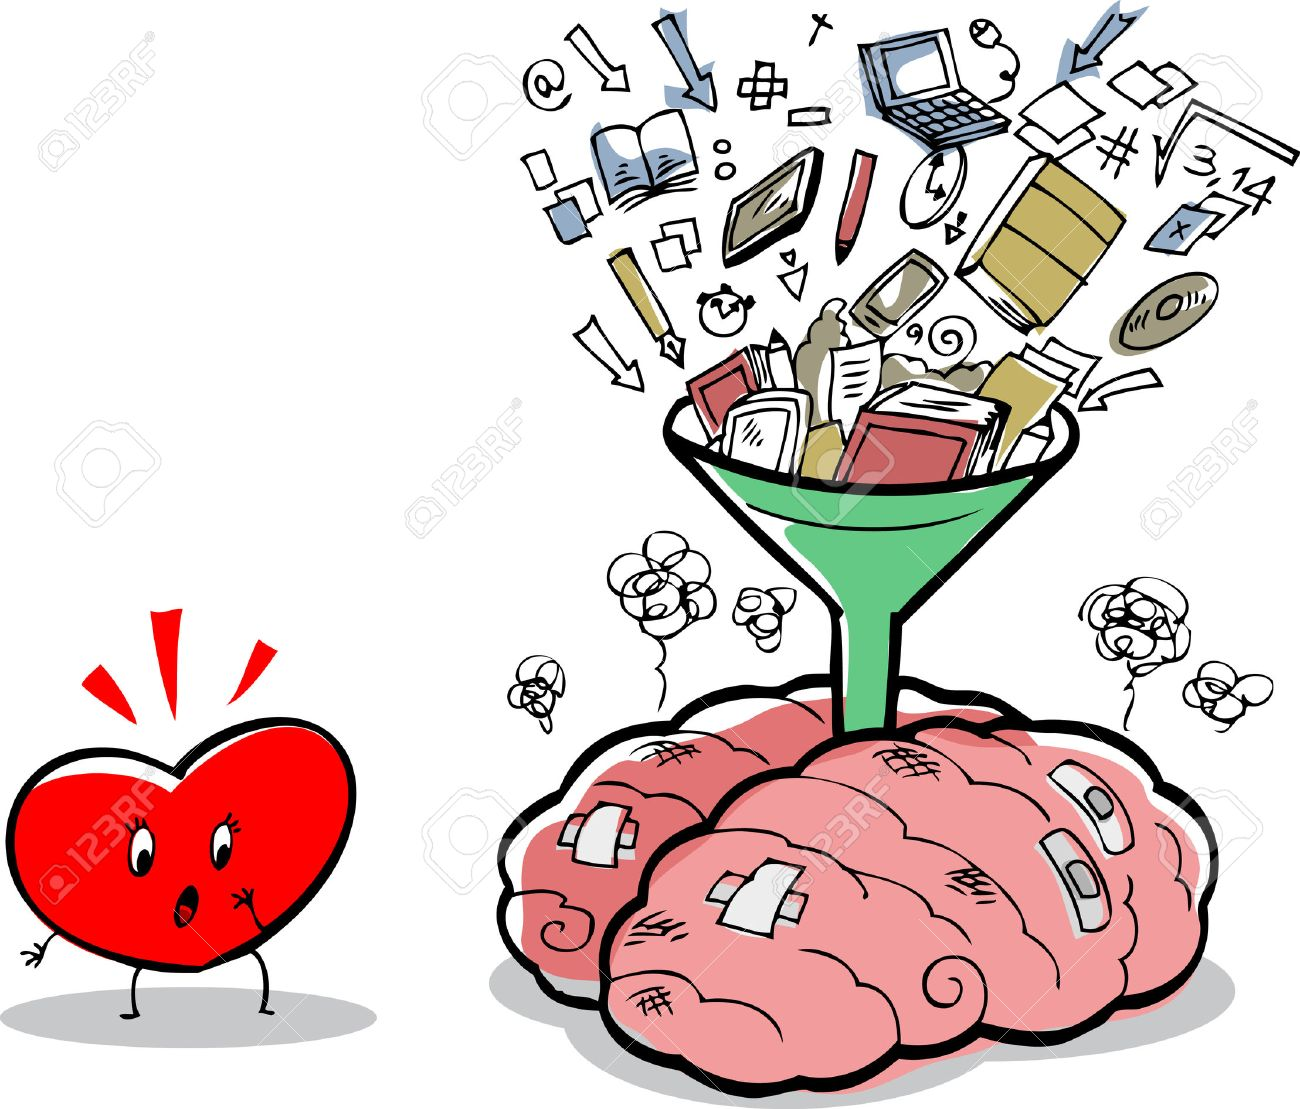 Messy brain full of notions and things, near a puzzled heart Stock Vector - 30190729